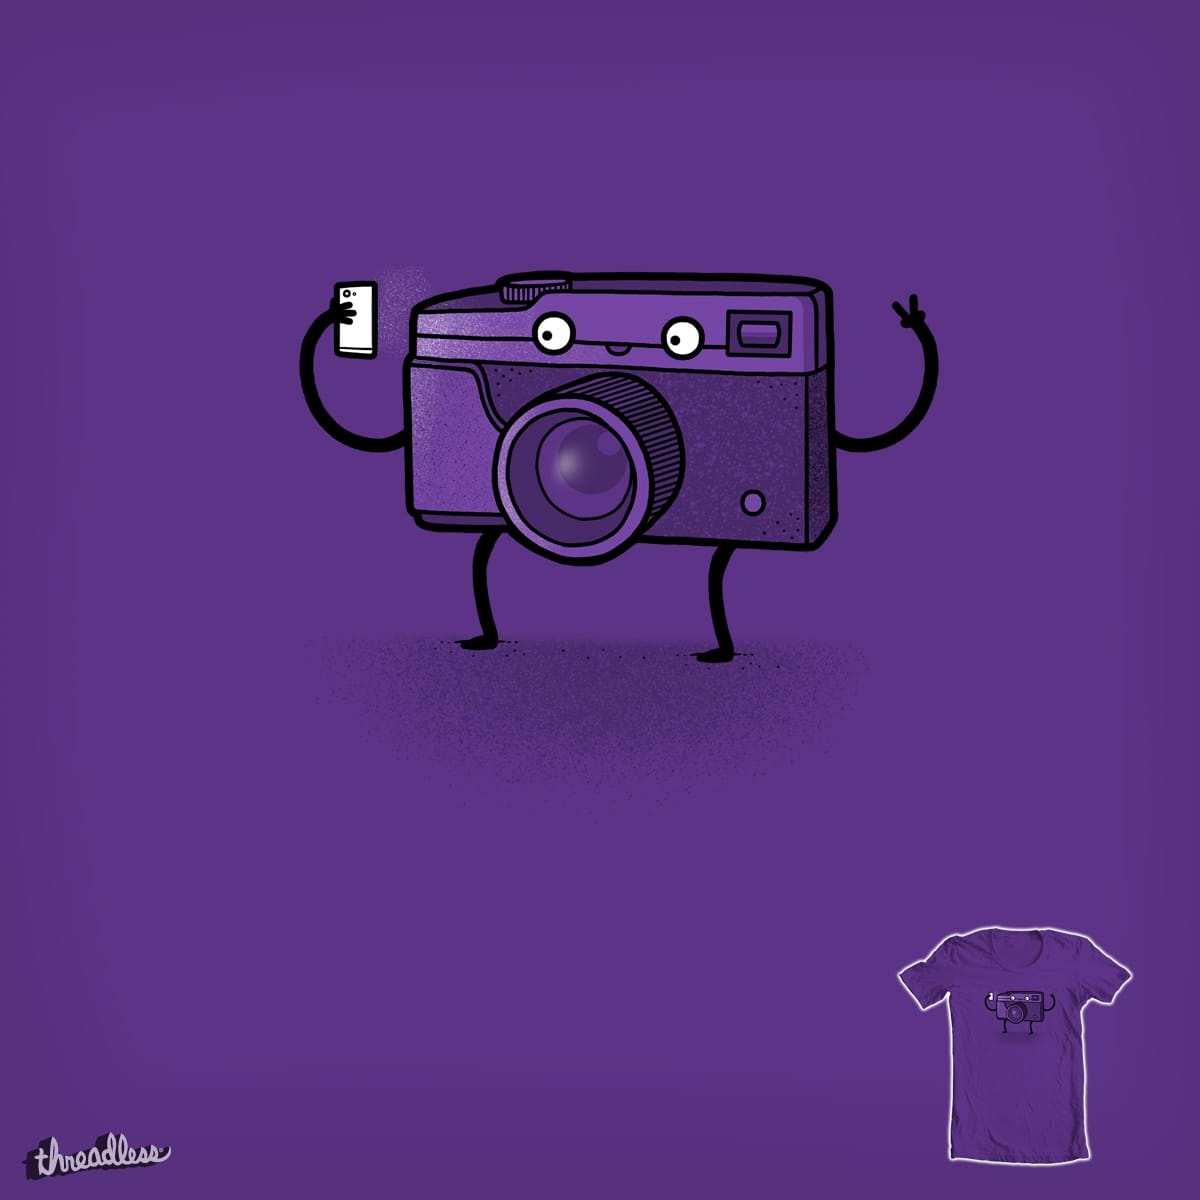 Narcissism  by randyotter3000 on Threadless